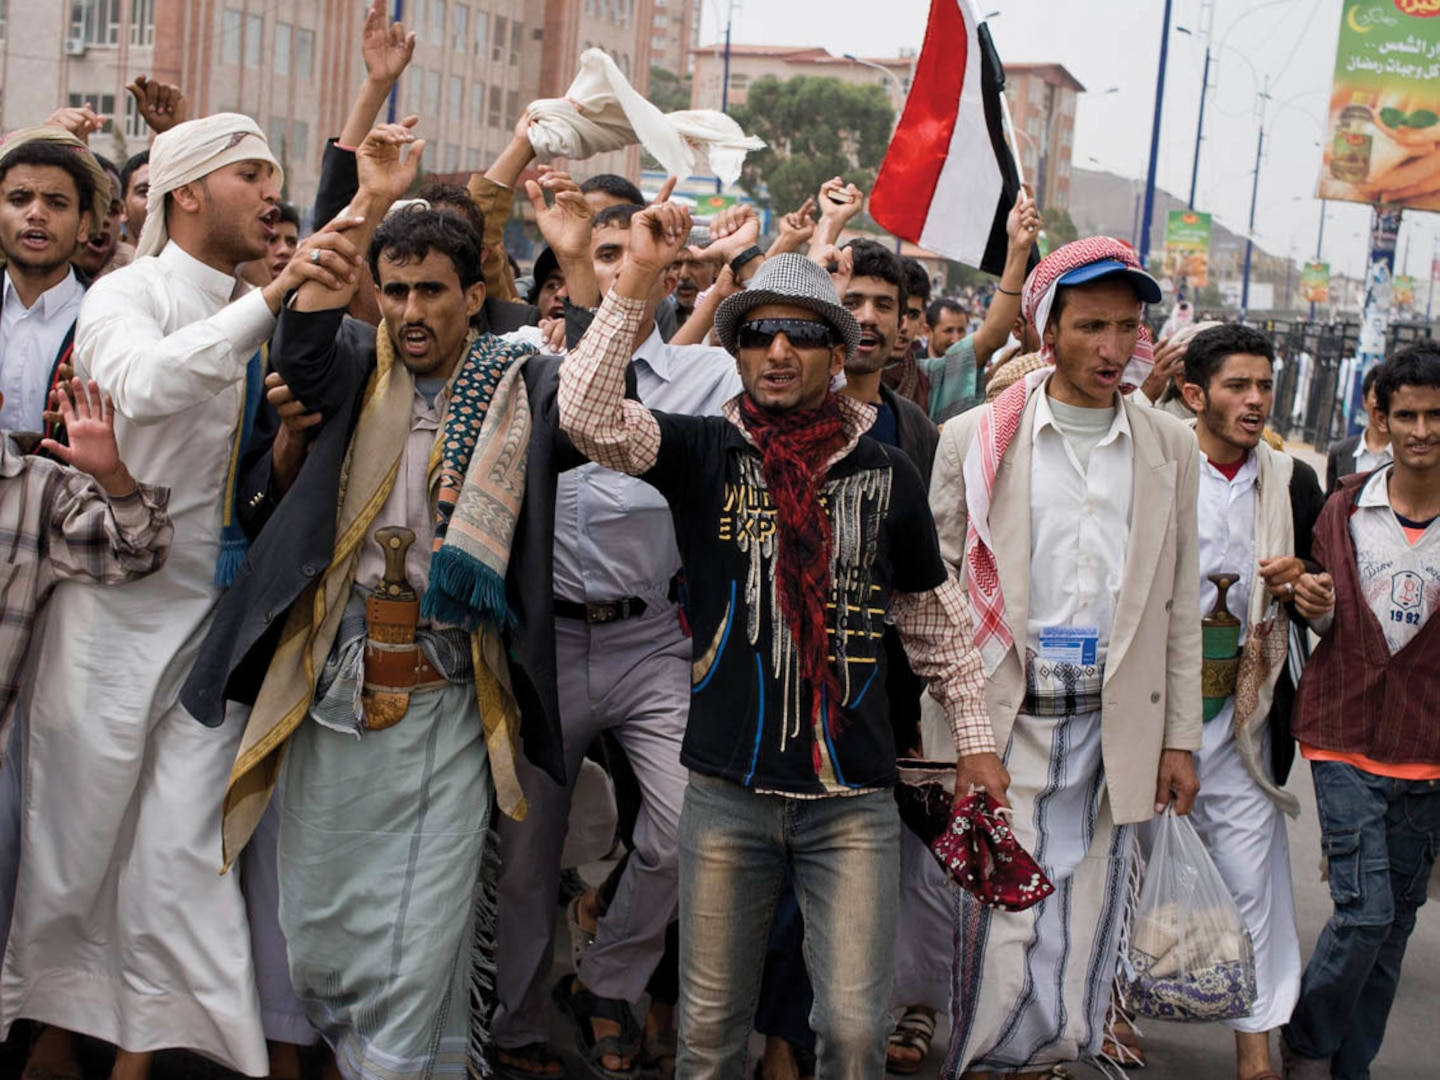 Yemeni protesters, August 2011.